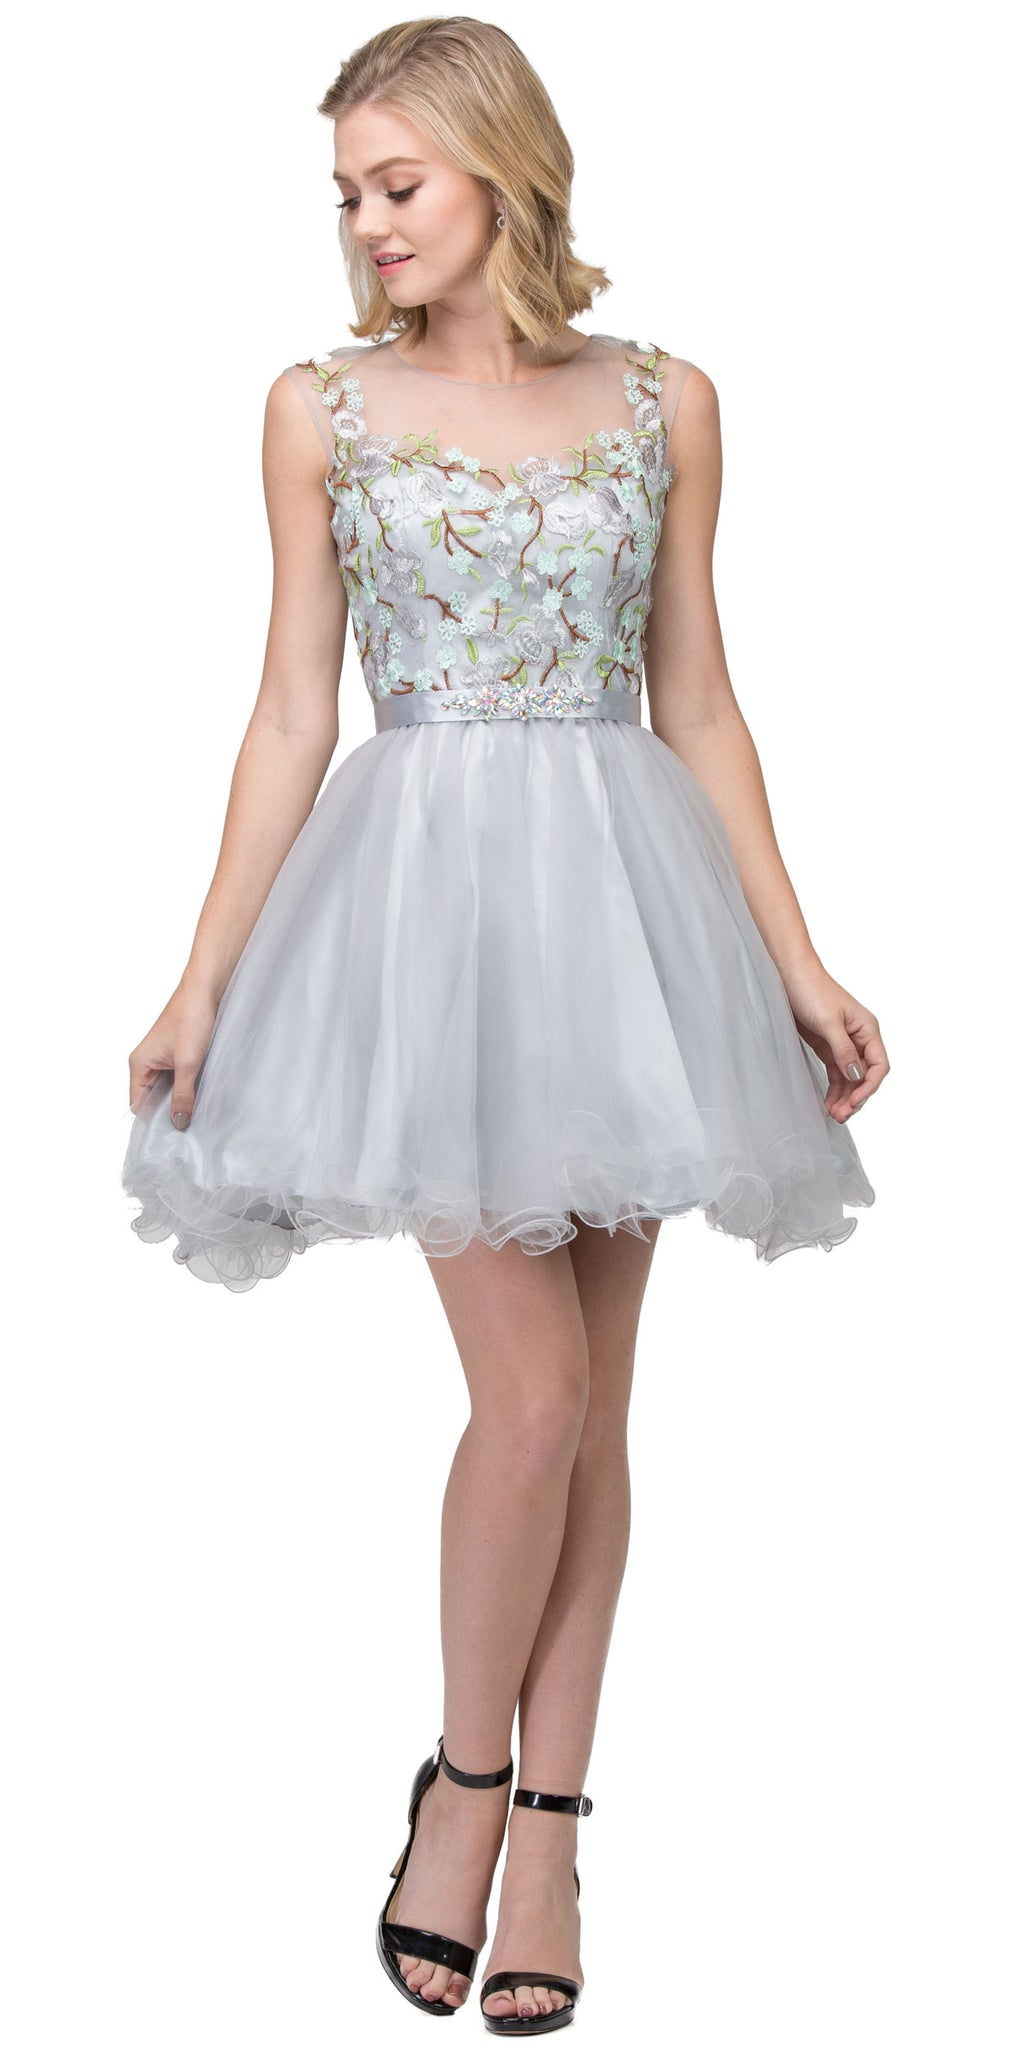 Main image of Floral Embroidery Mesh Top Short Tulle Homecoming Dress